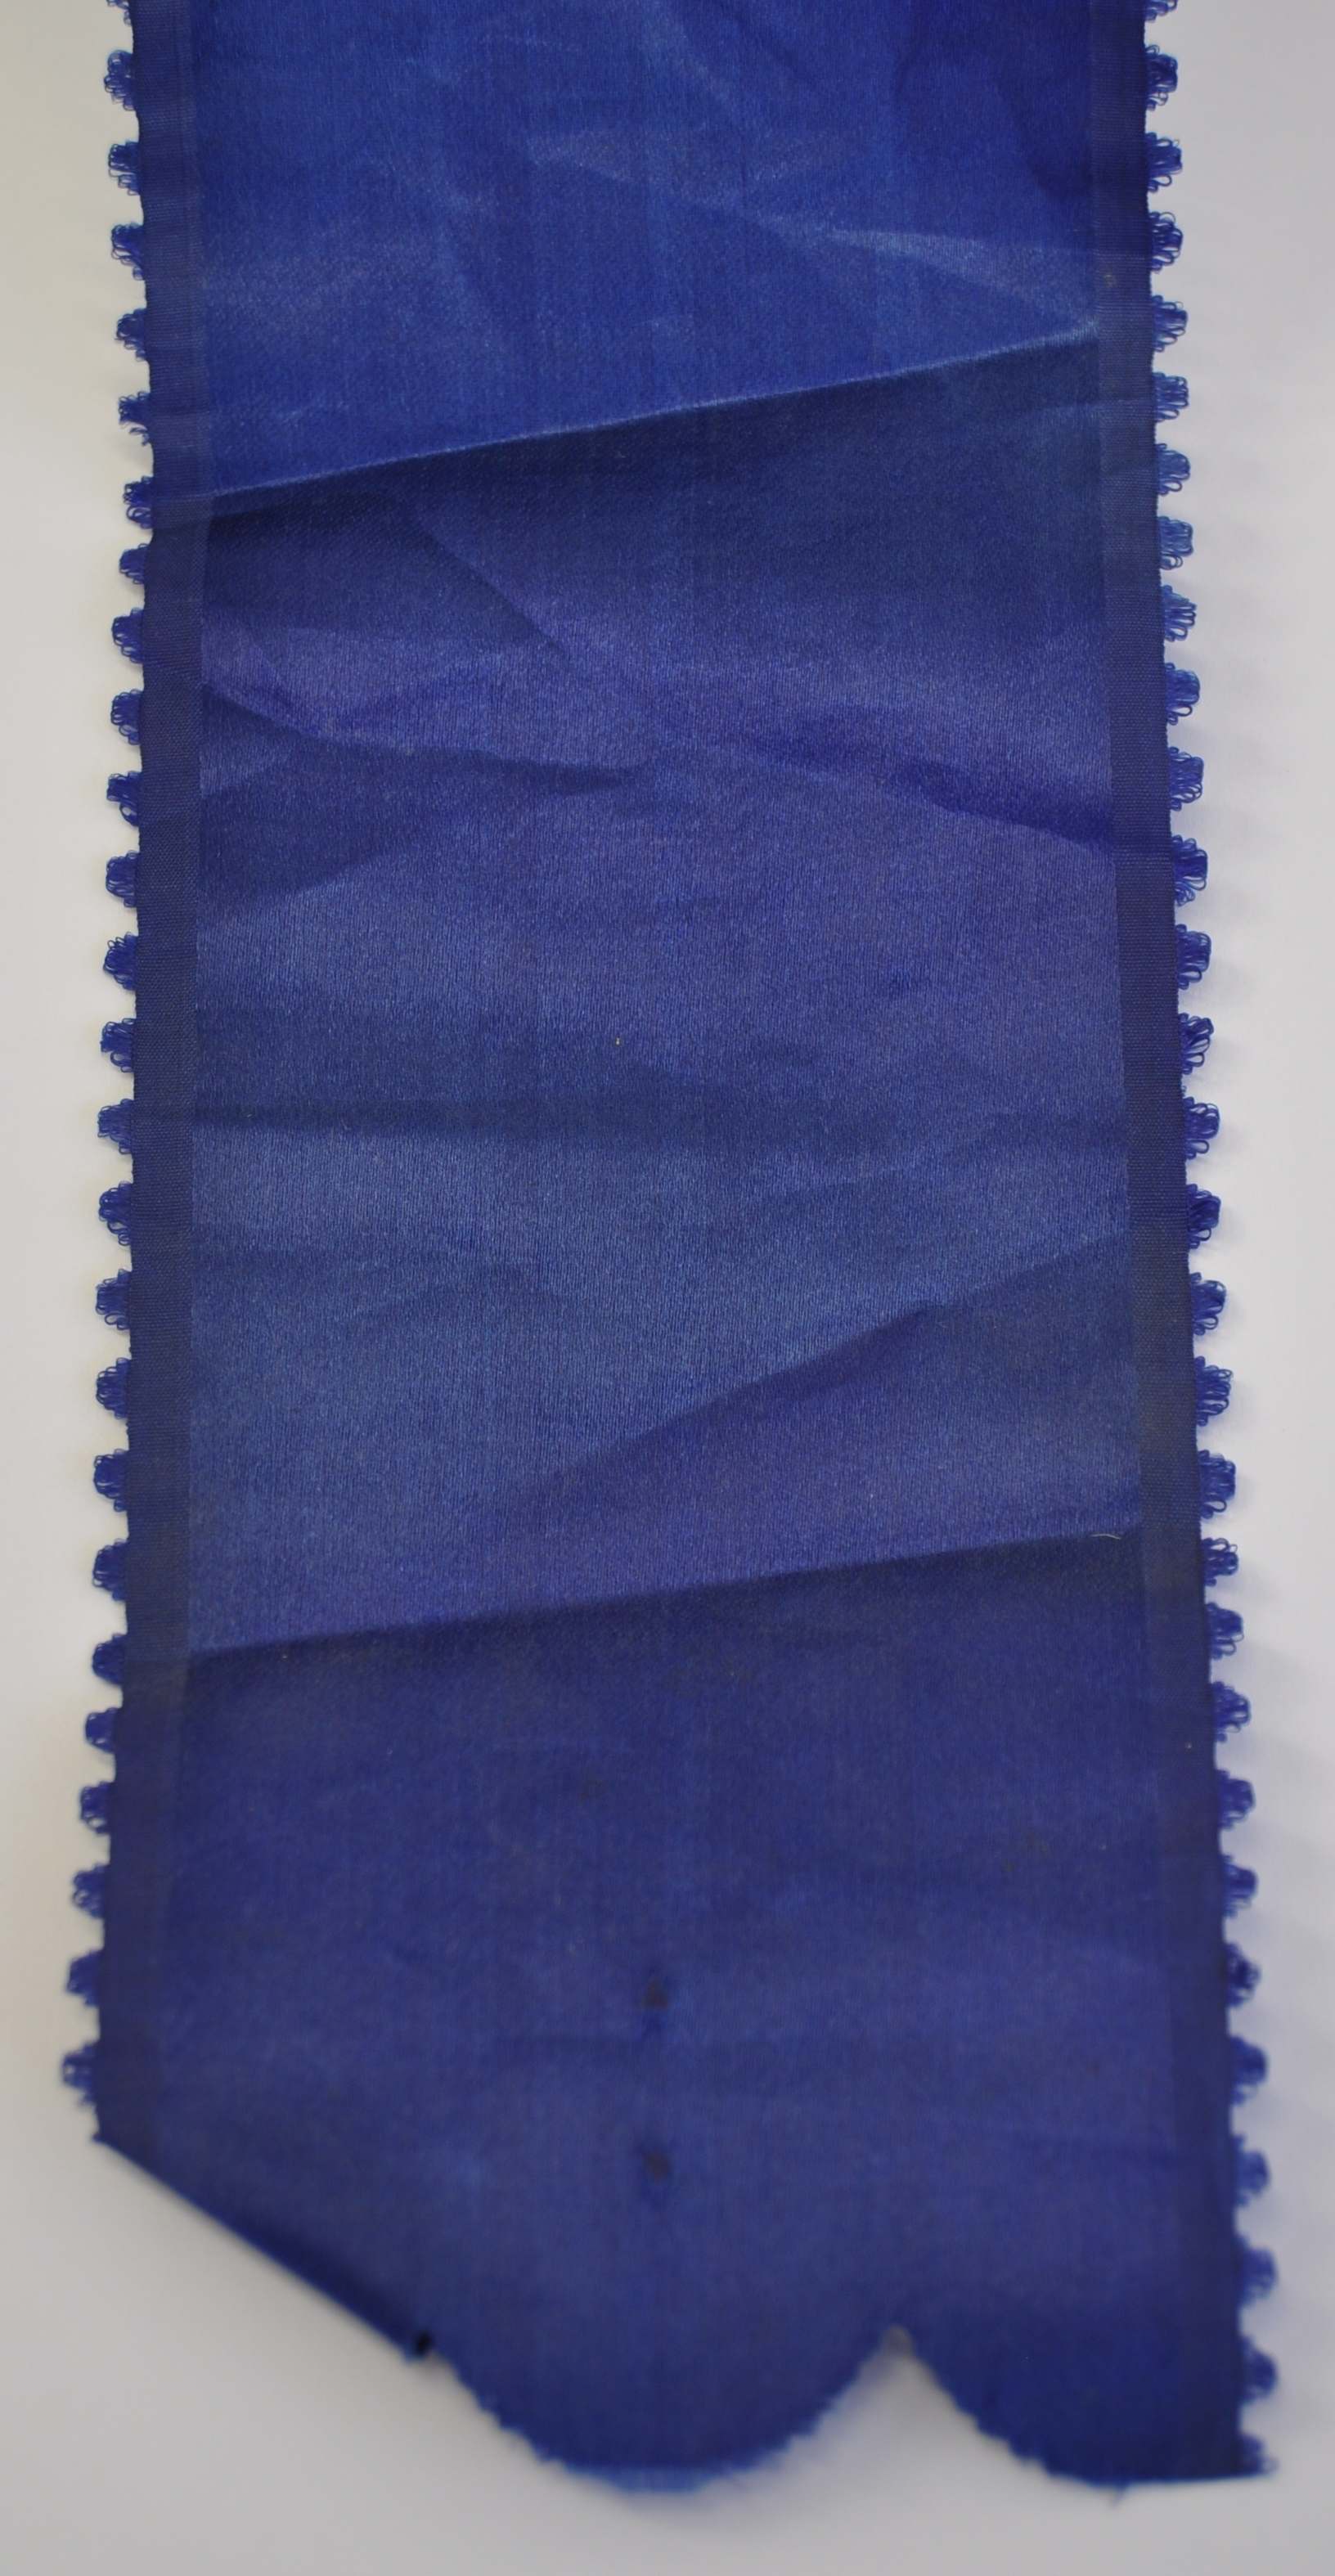 Ribbon detail, before conservation